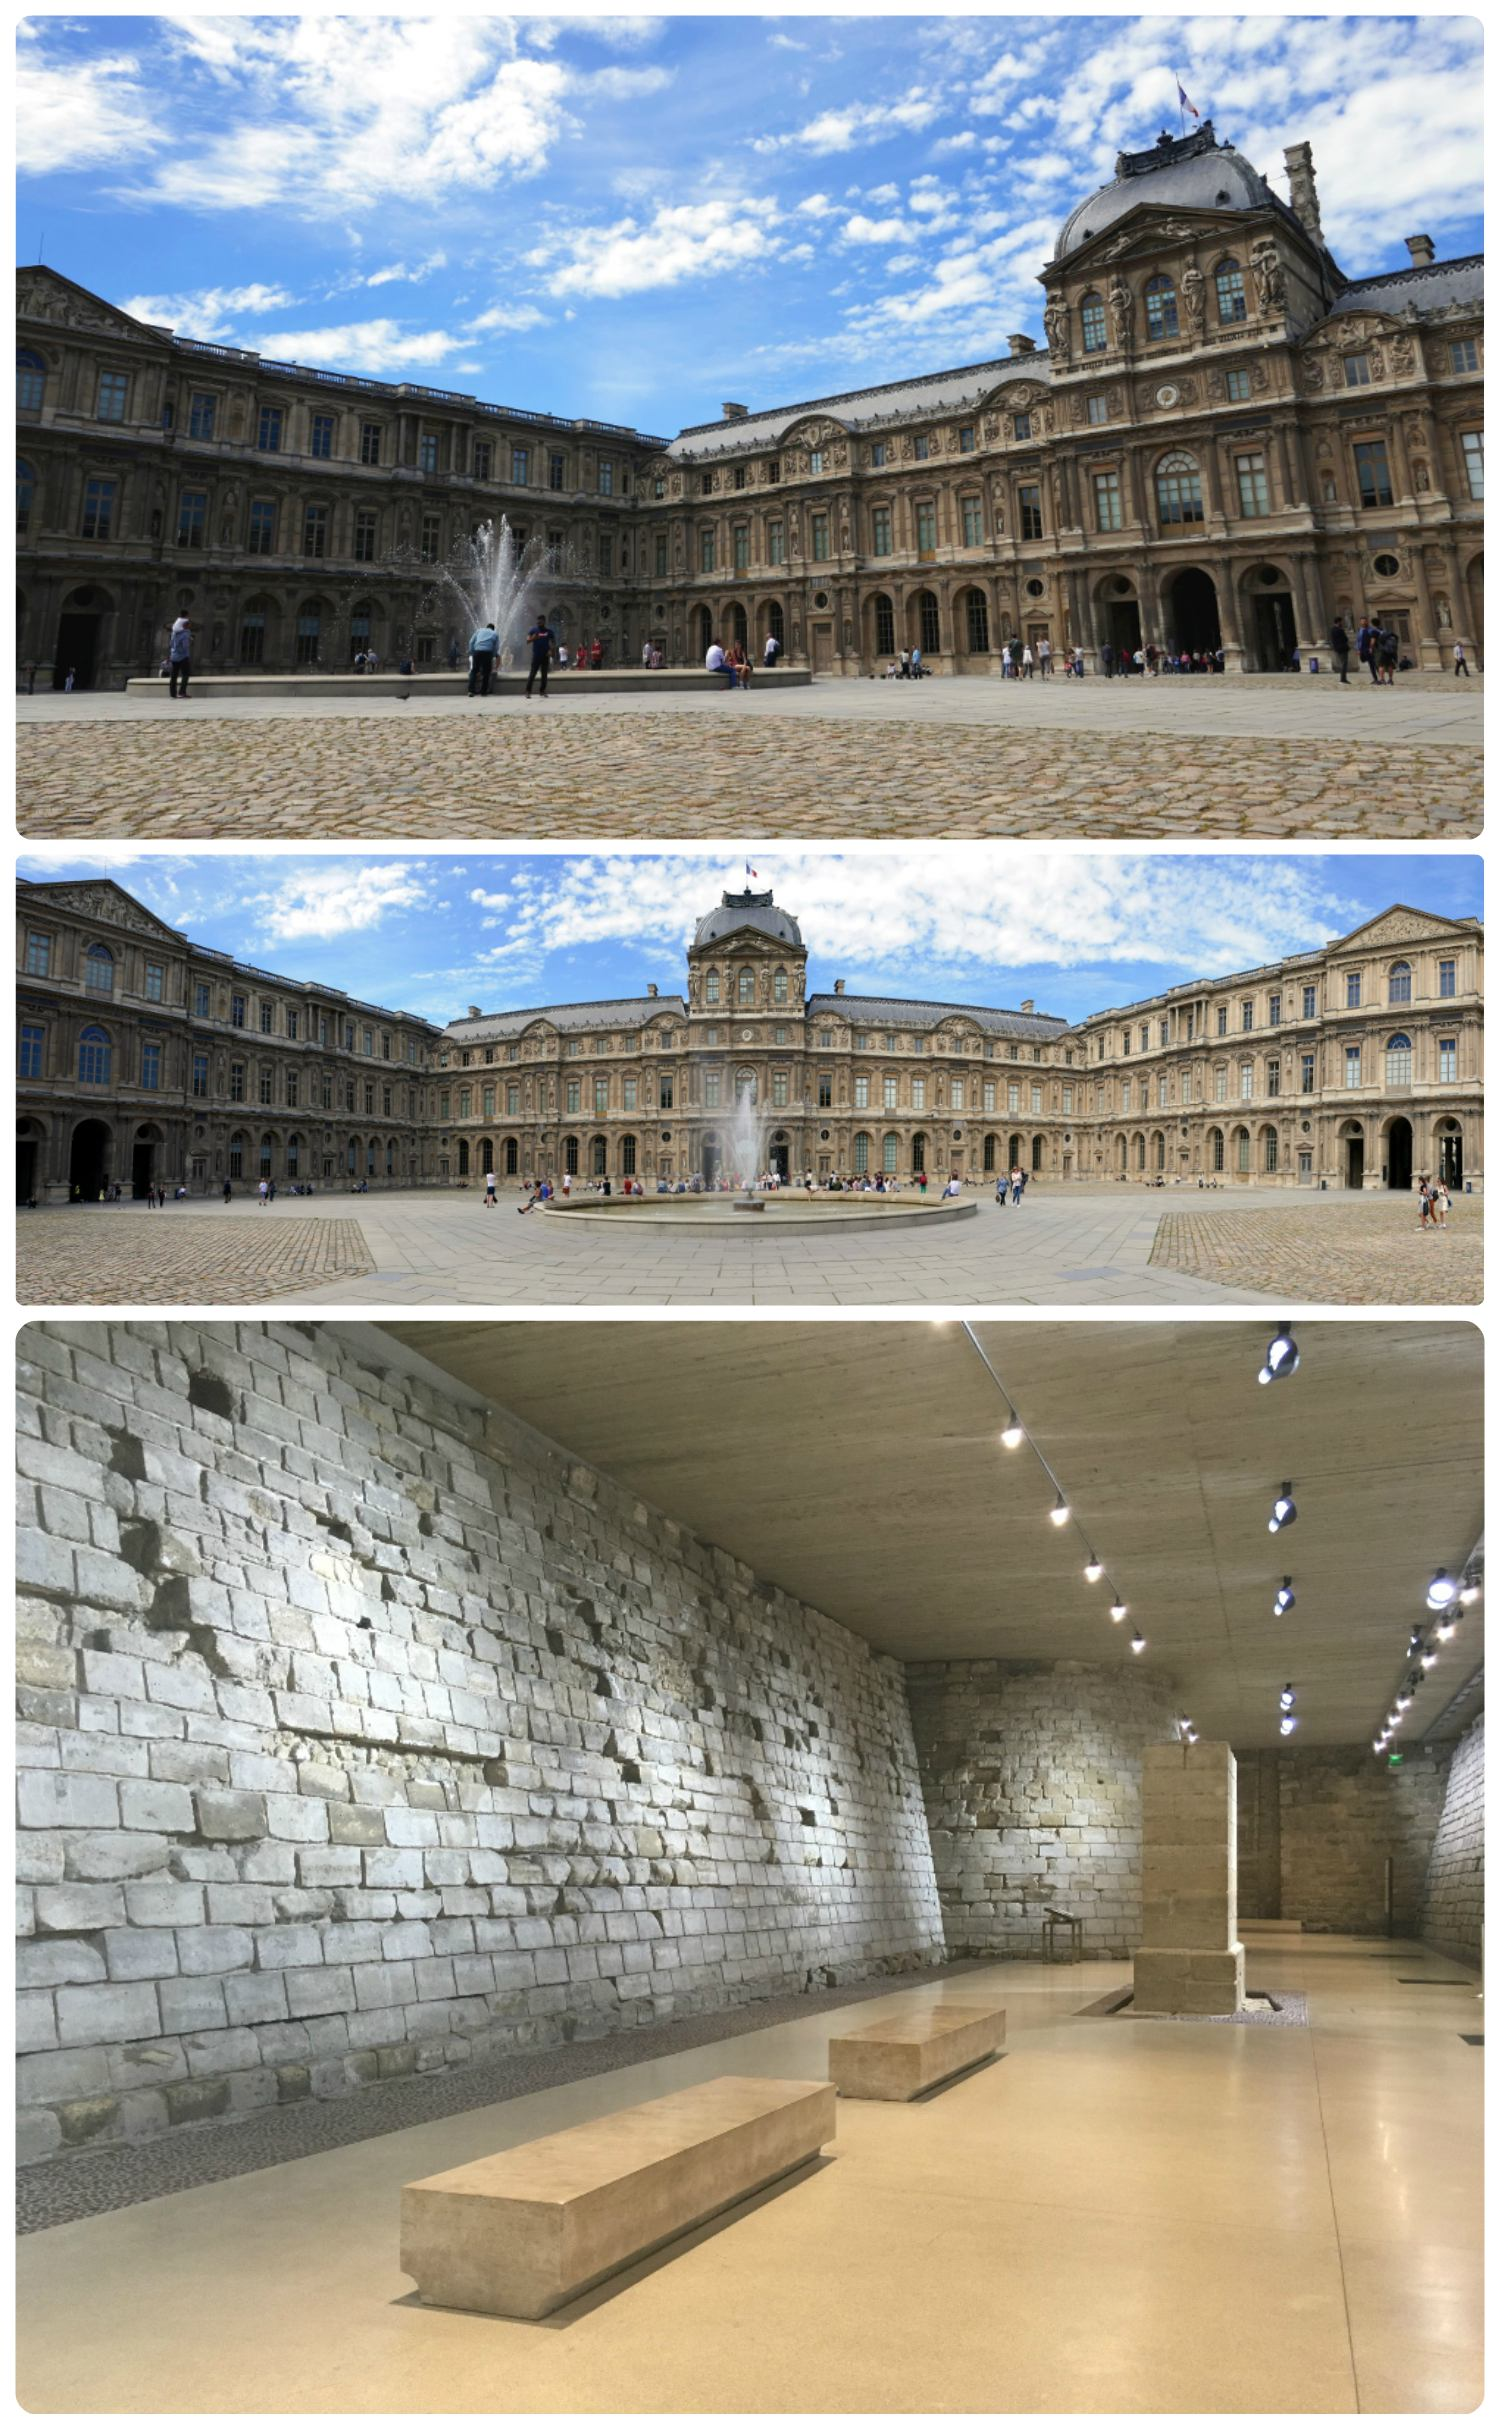 The Louvre is a large building - if you're in the courtyard where the main entrance with the glass pyramids are, don't miss the rest of the palace by passing through the east archway to another courtyard and fountain. The top two images are of the Louvre Palace. The bottom image is of the well perserved fortress walls.